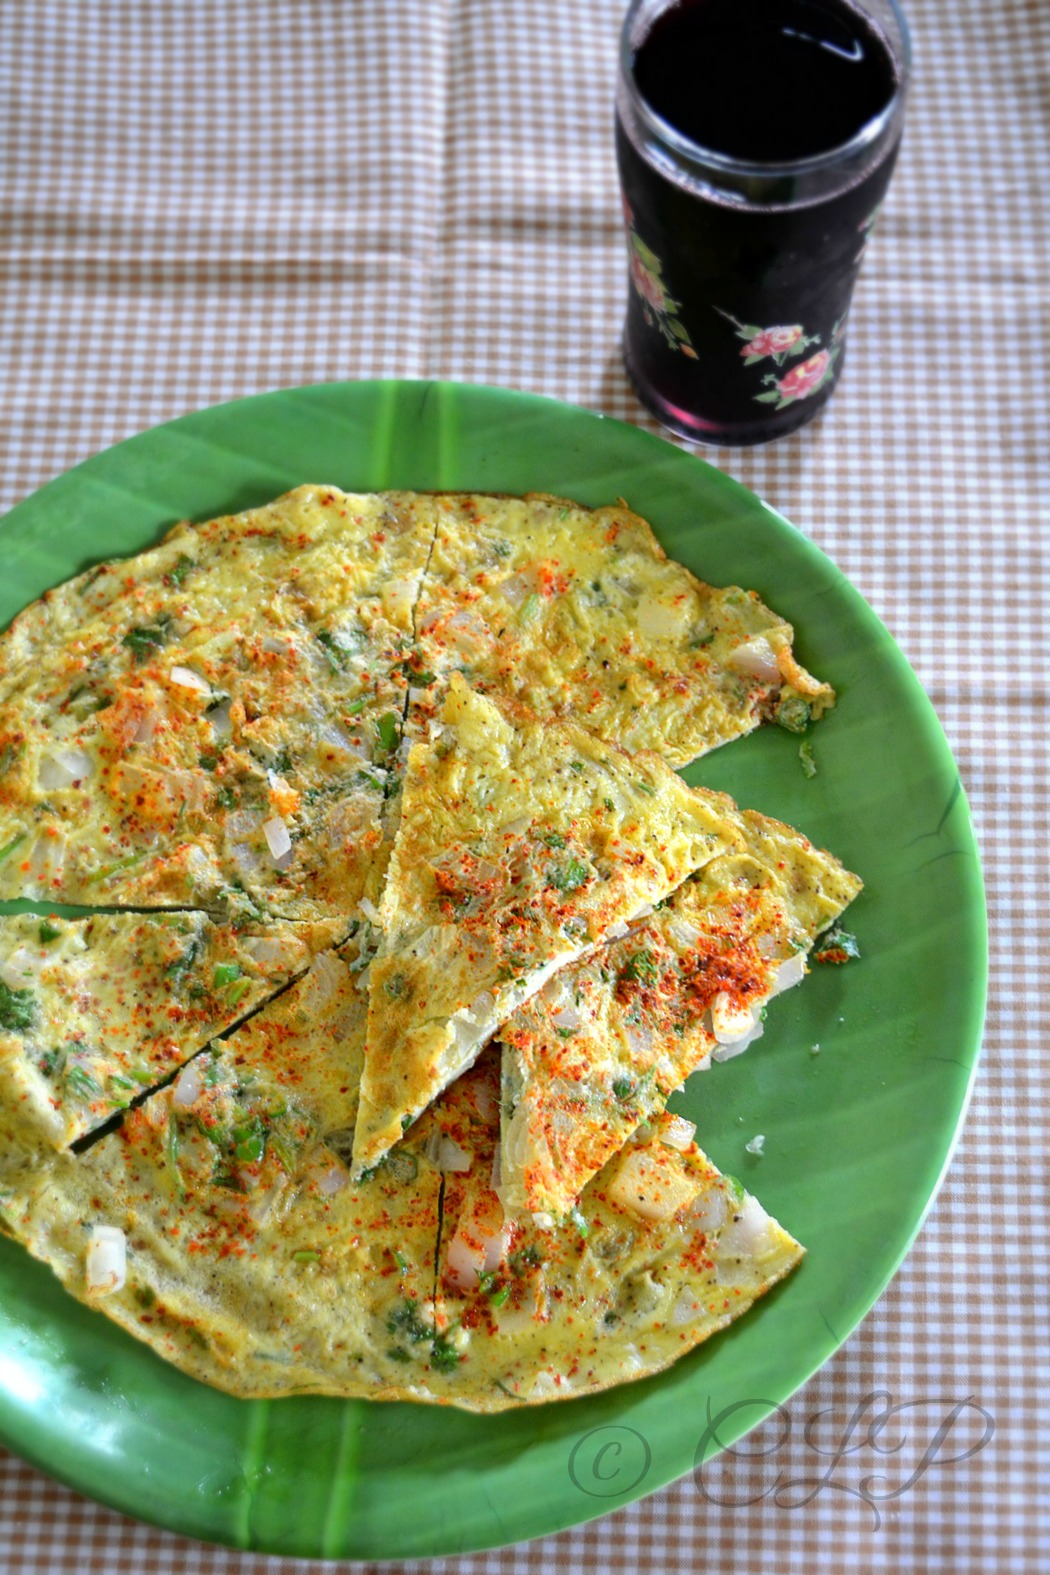 Omlette with spices